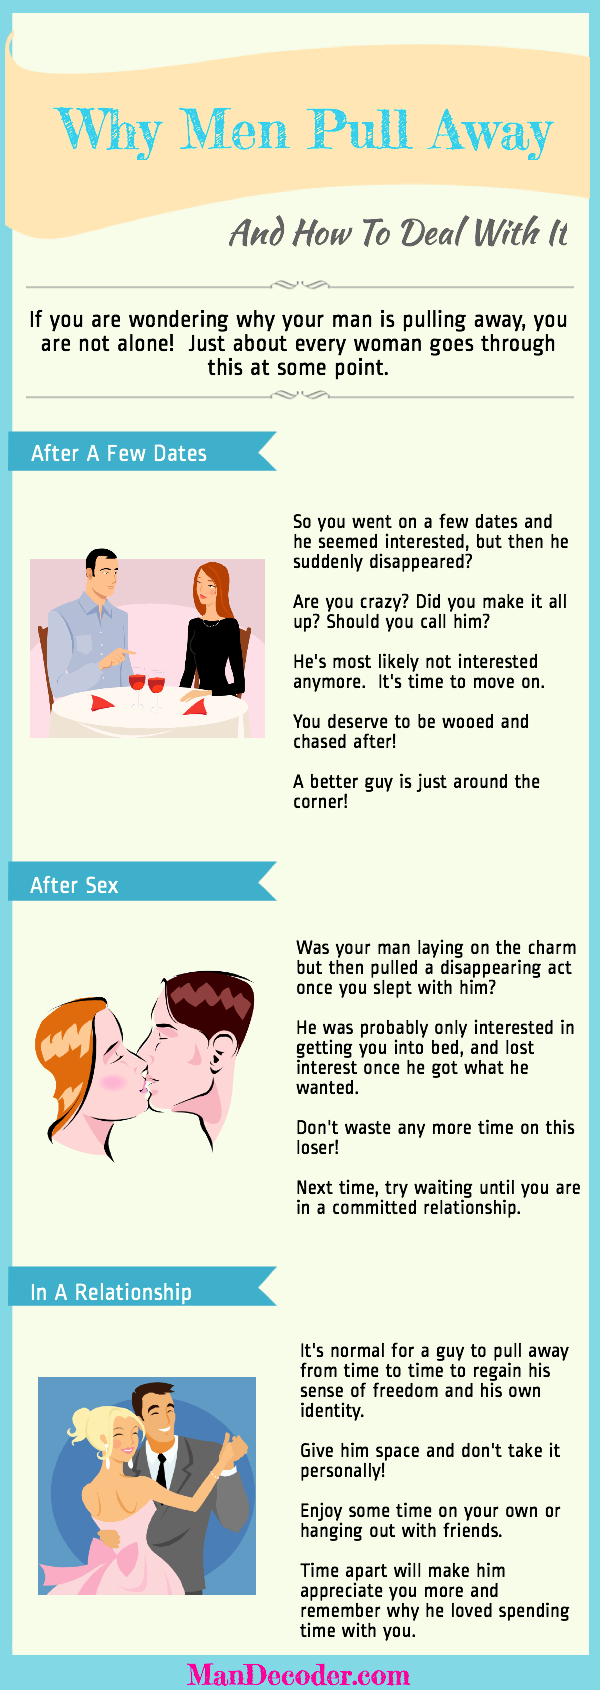 Why men pull away after sex